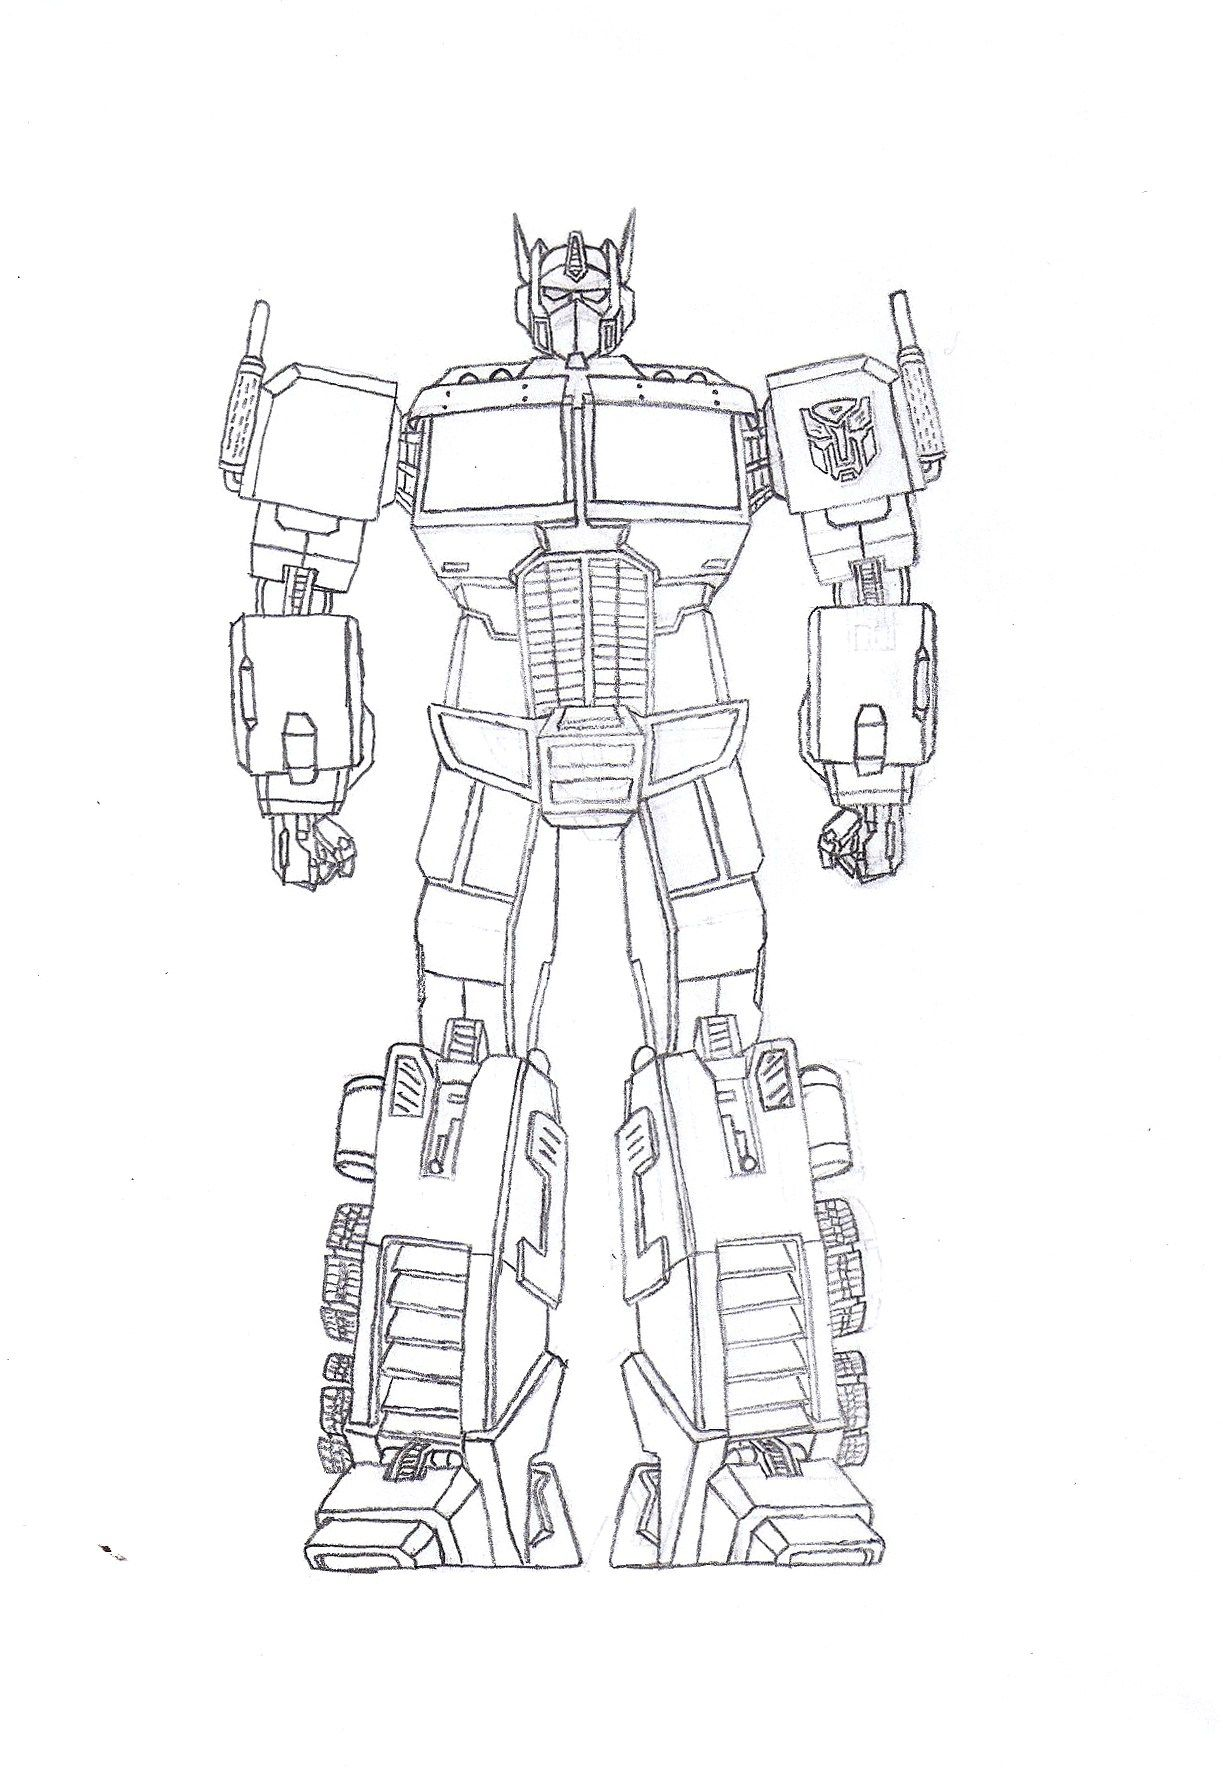 Color Optimus Prime Coloring Pages For Kids And For Adults Transformers Coloring Pages Coloring Pages Coloring Pages To Print